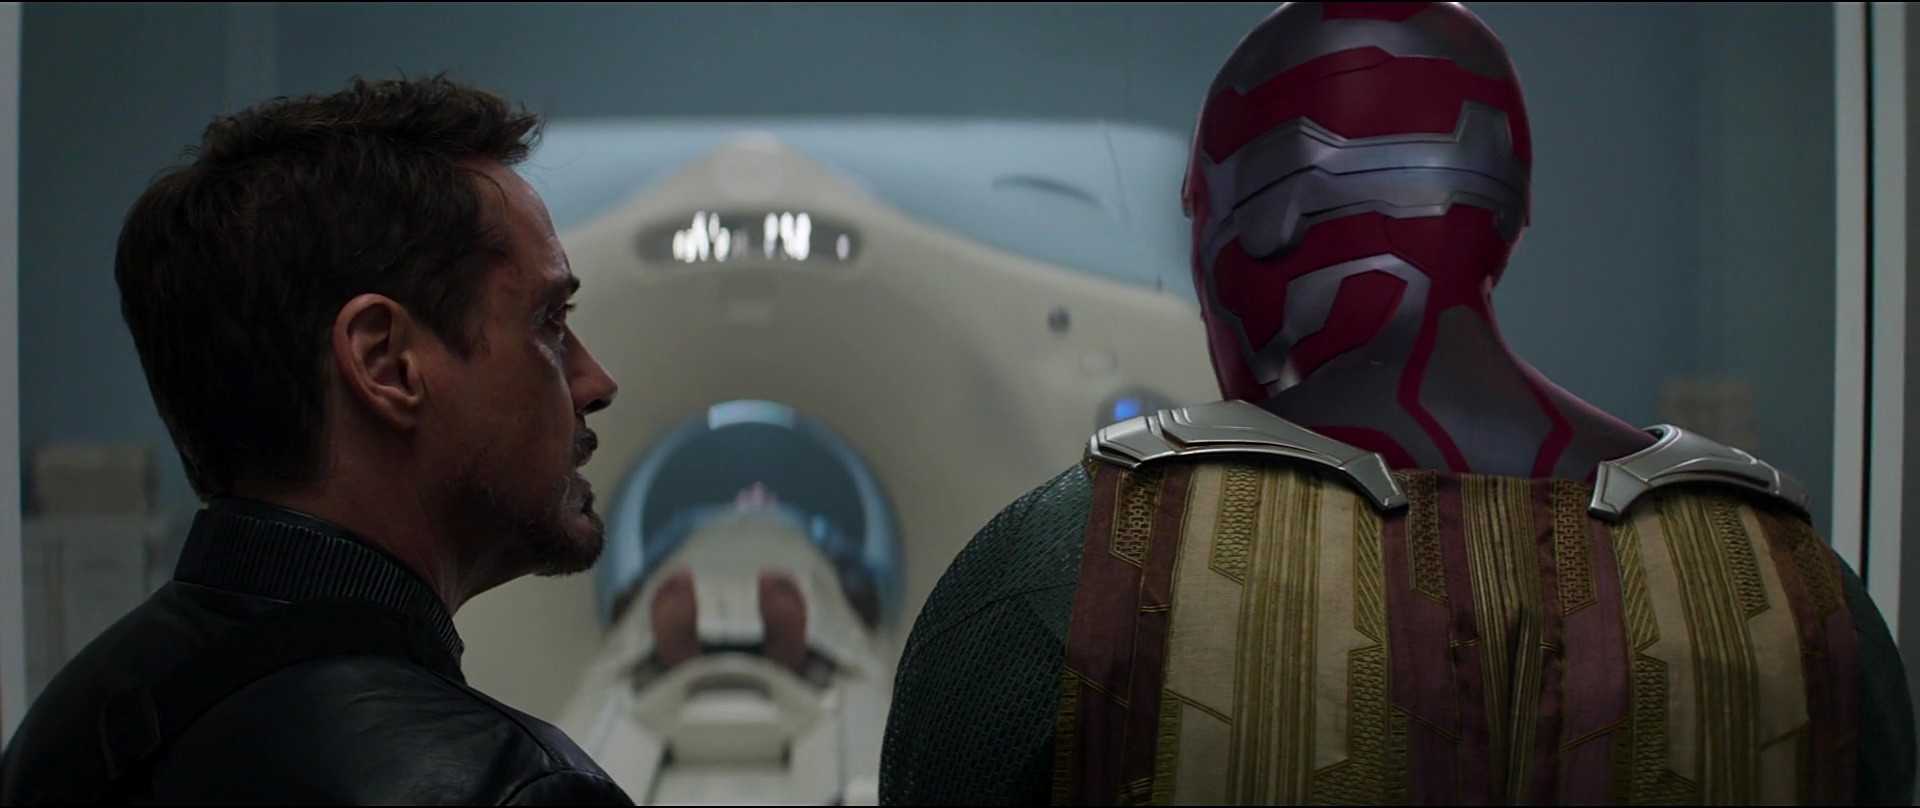 http://caps.pictures/201/6-civil-war/full/cap-civil-war-movie-screencaps.com-12794.jpg